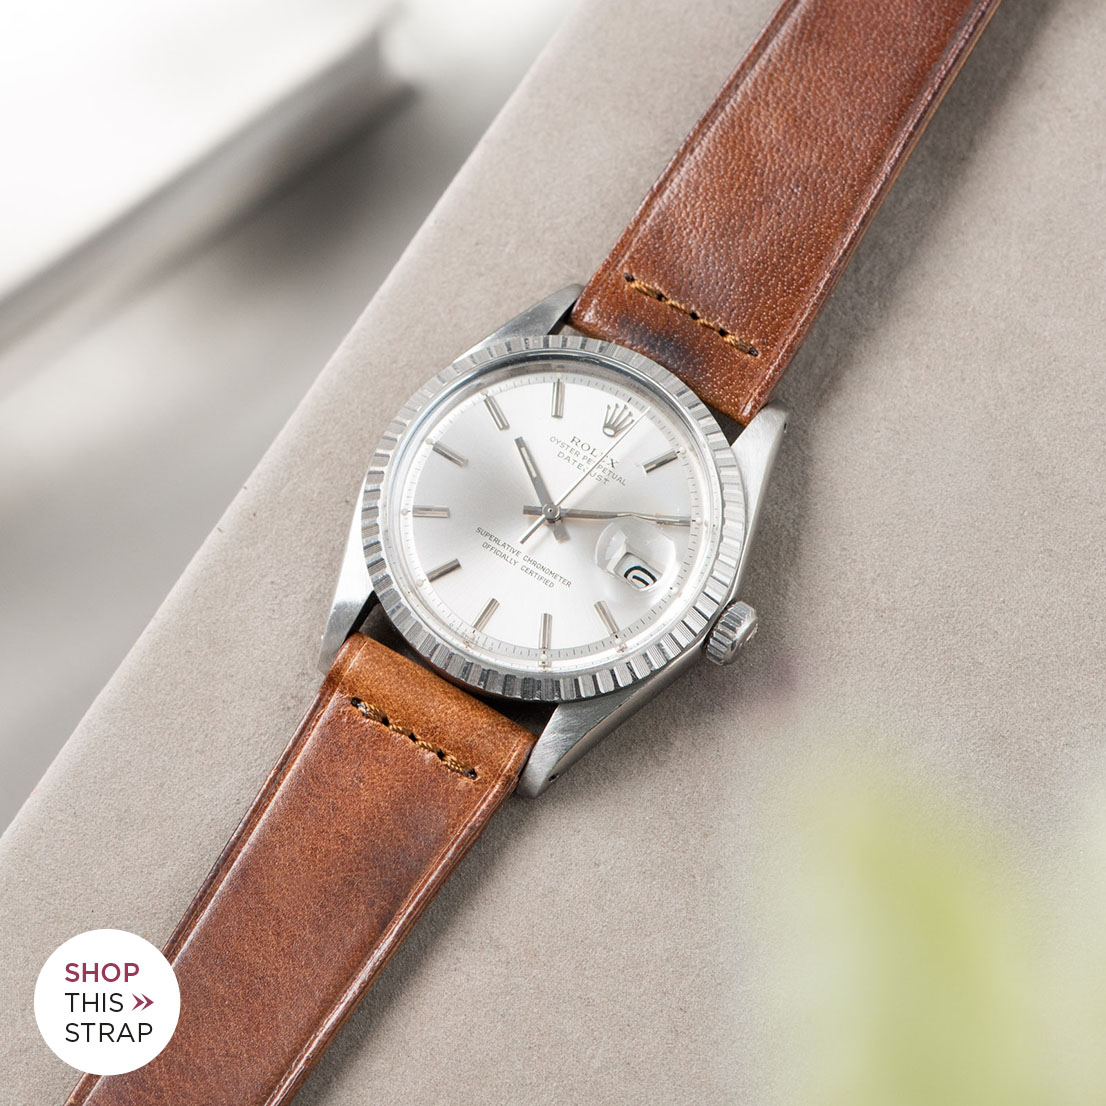 Bulang and sons_Strap Guide_Rolex Datejust Silverdial 1601 1603 1600 1630_SIENA BROWN EXTRA THIN LEATHER WATCH STRAP